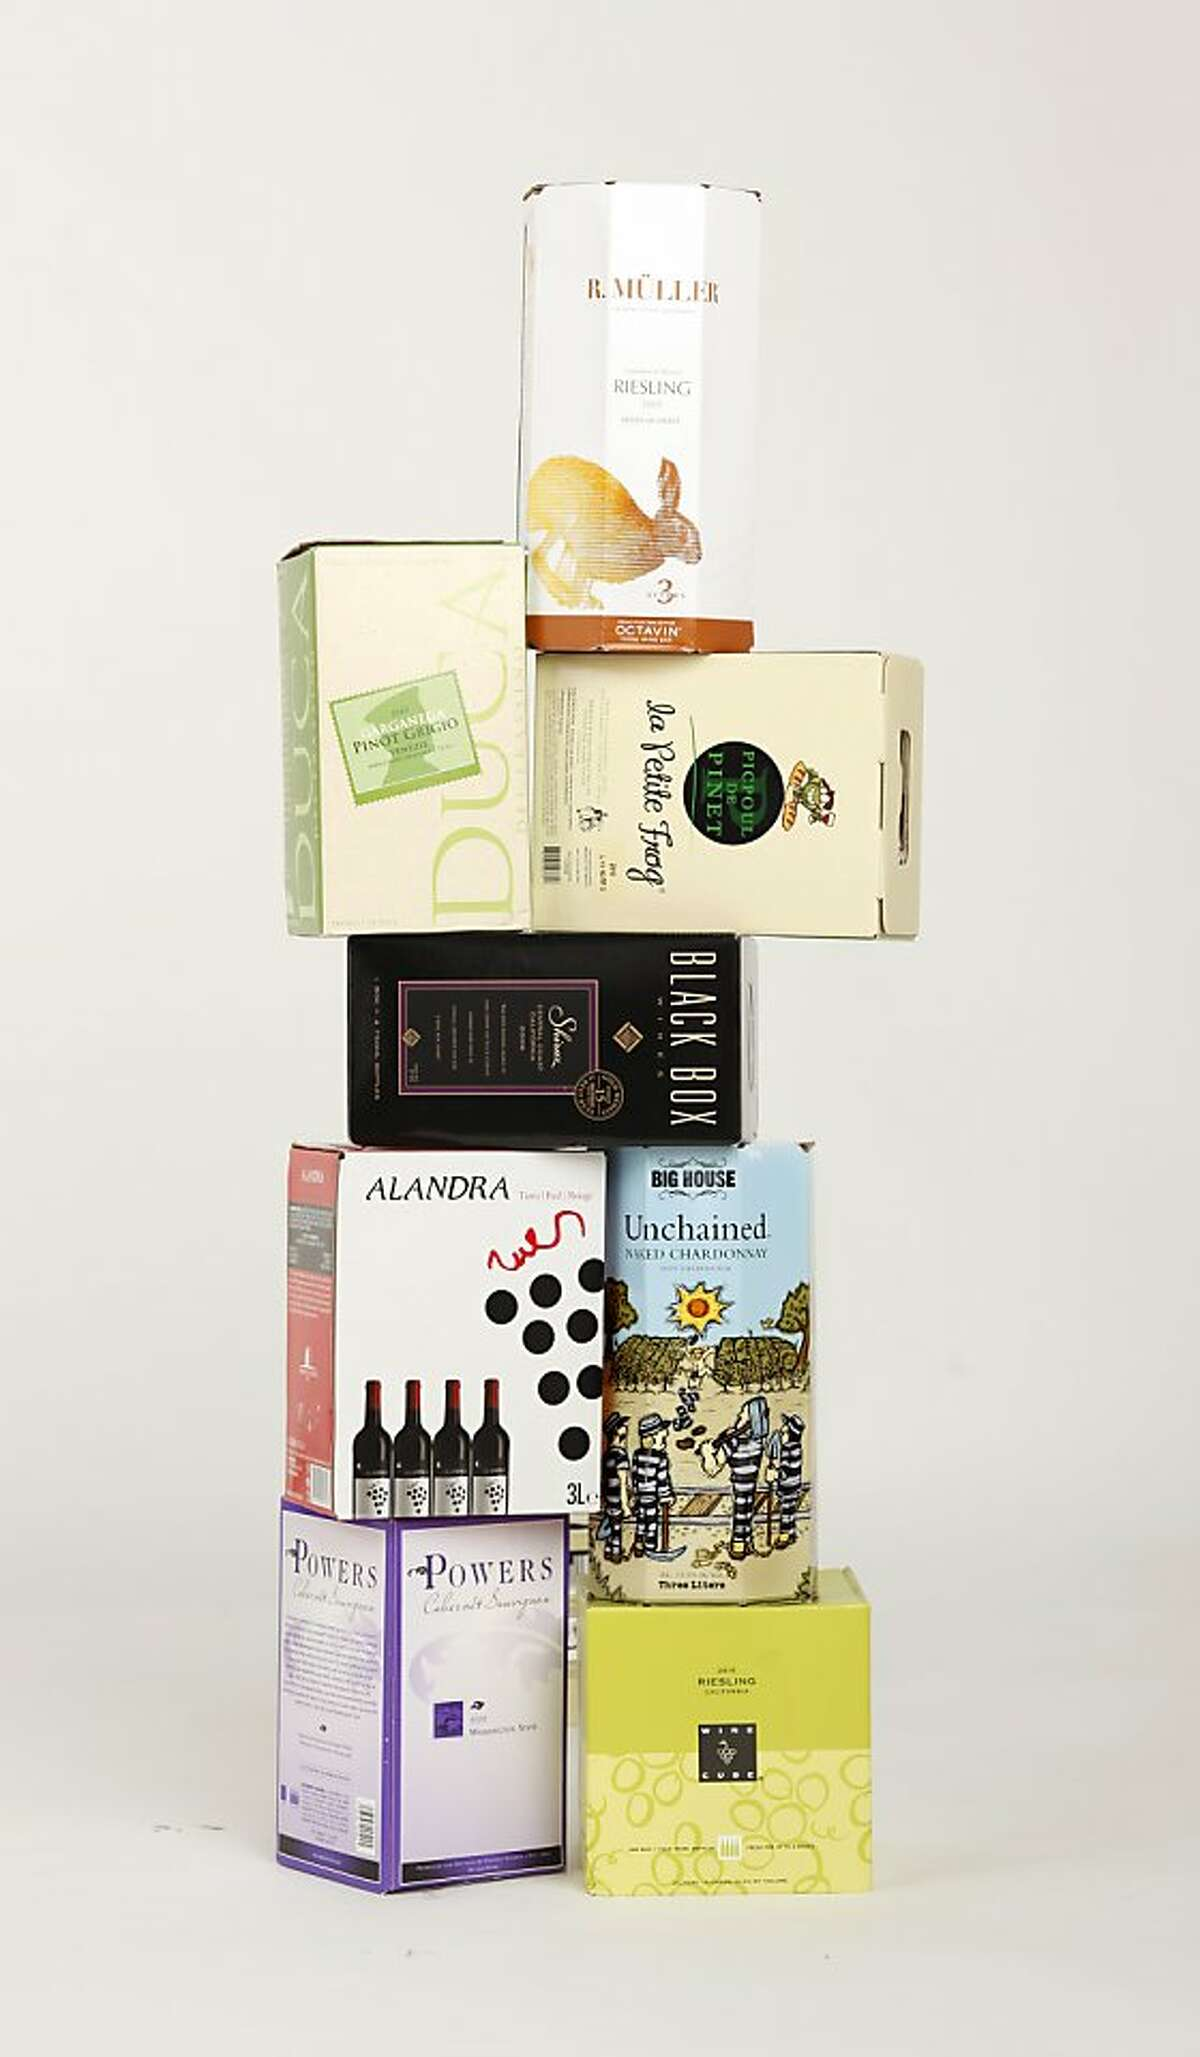 The Chronicle Recommends: Box wines